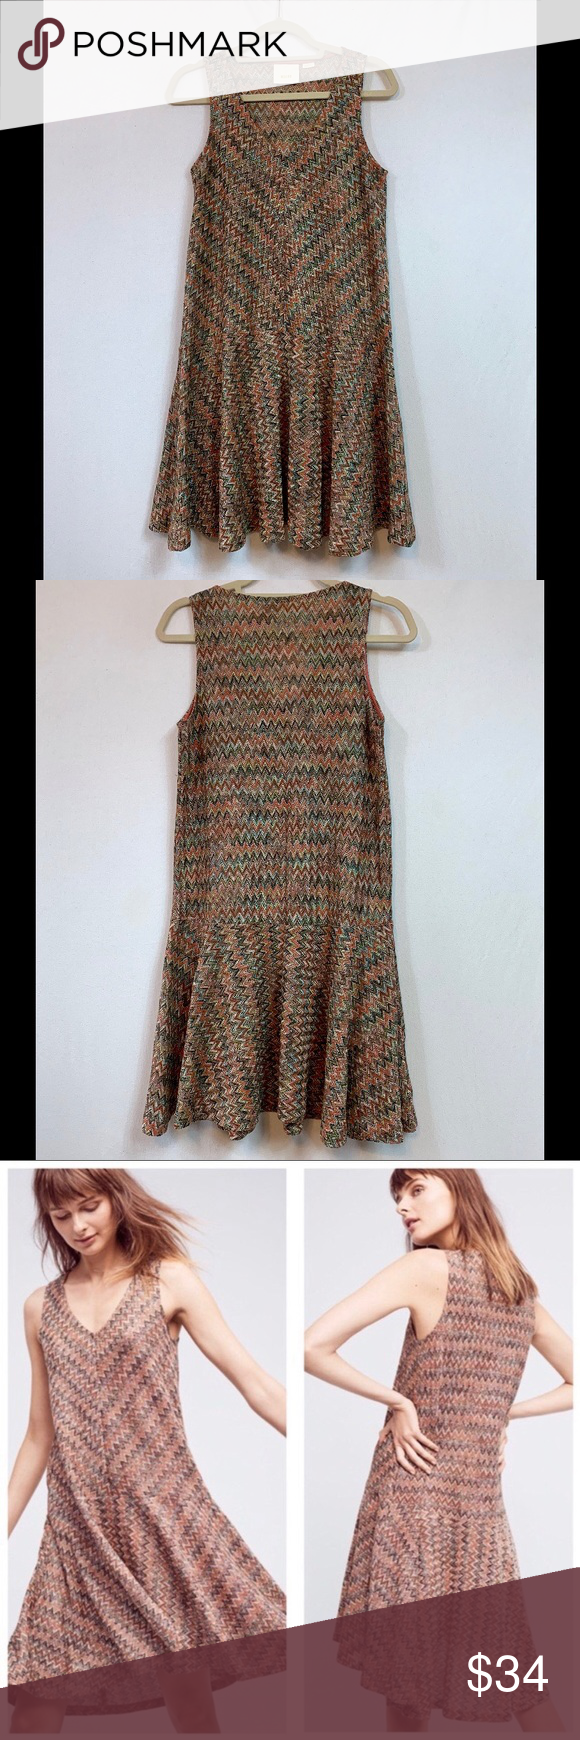 005af7311f62 Anthropologie Maeve Westwater Knit Chevron Dress Anthropologie Maeve  Westwater Knit Chevron Dress • Size Small •